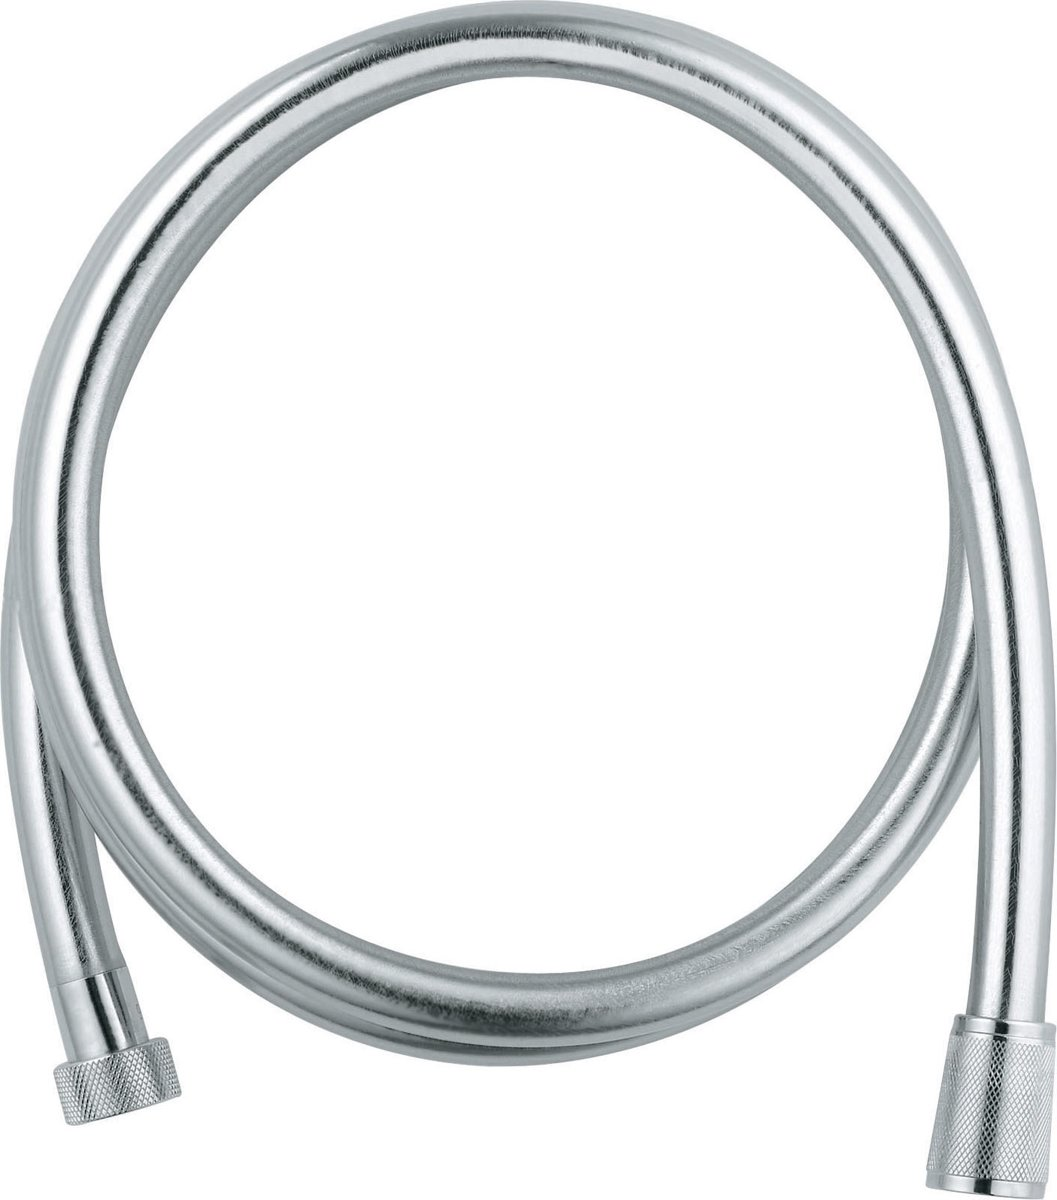 GROHE VitalioFlex Silver Doucheslang - 175 cm - Chroom kopen